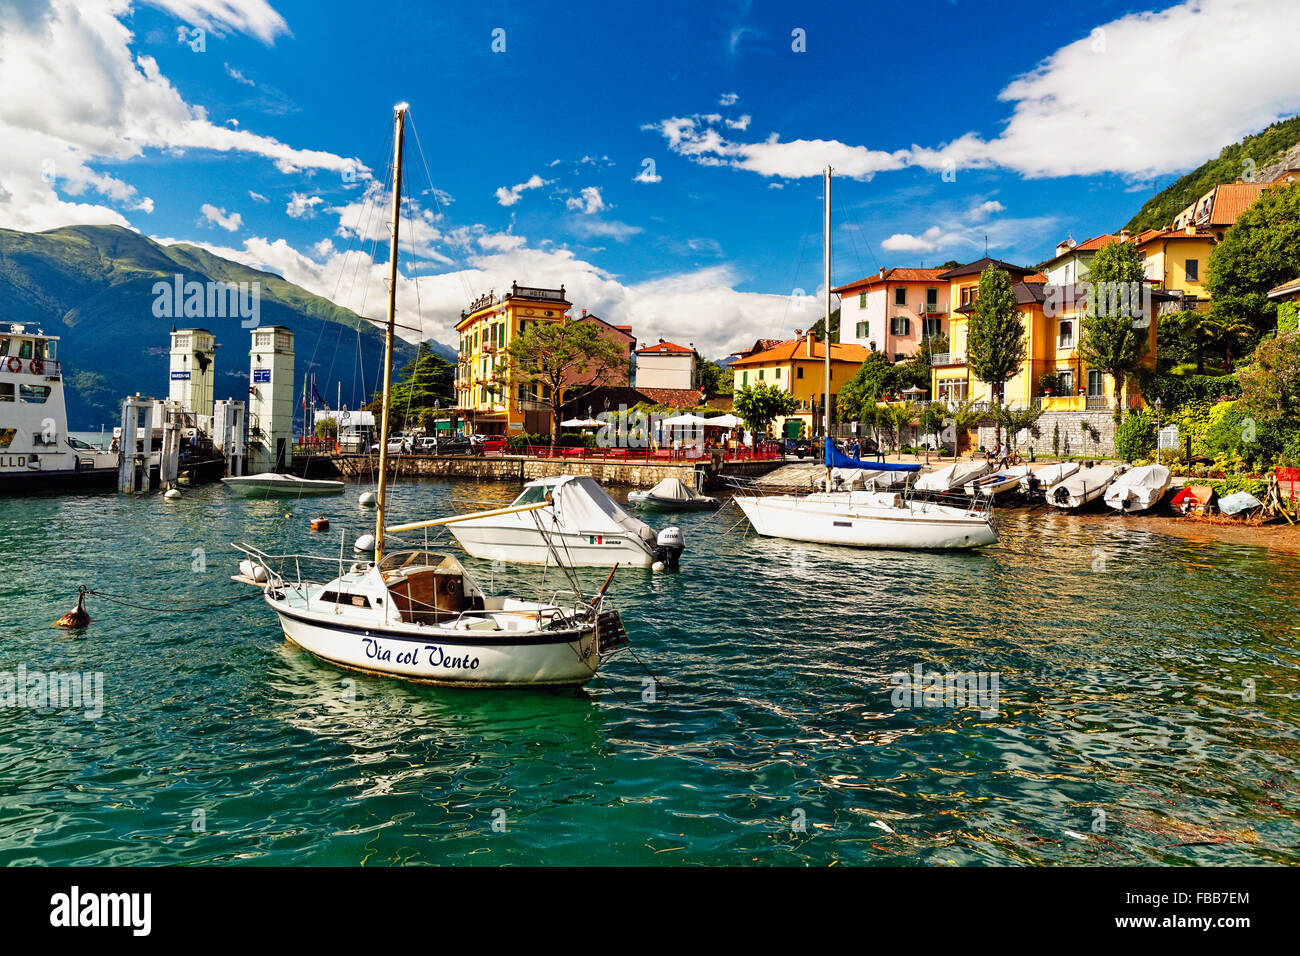 Low Angle View of the Varenna Harbor on Lake Como, Lombardy, Italy - Stock Image